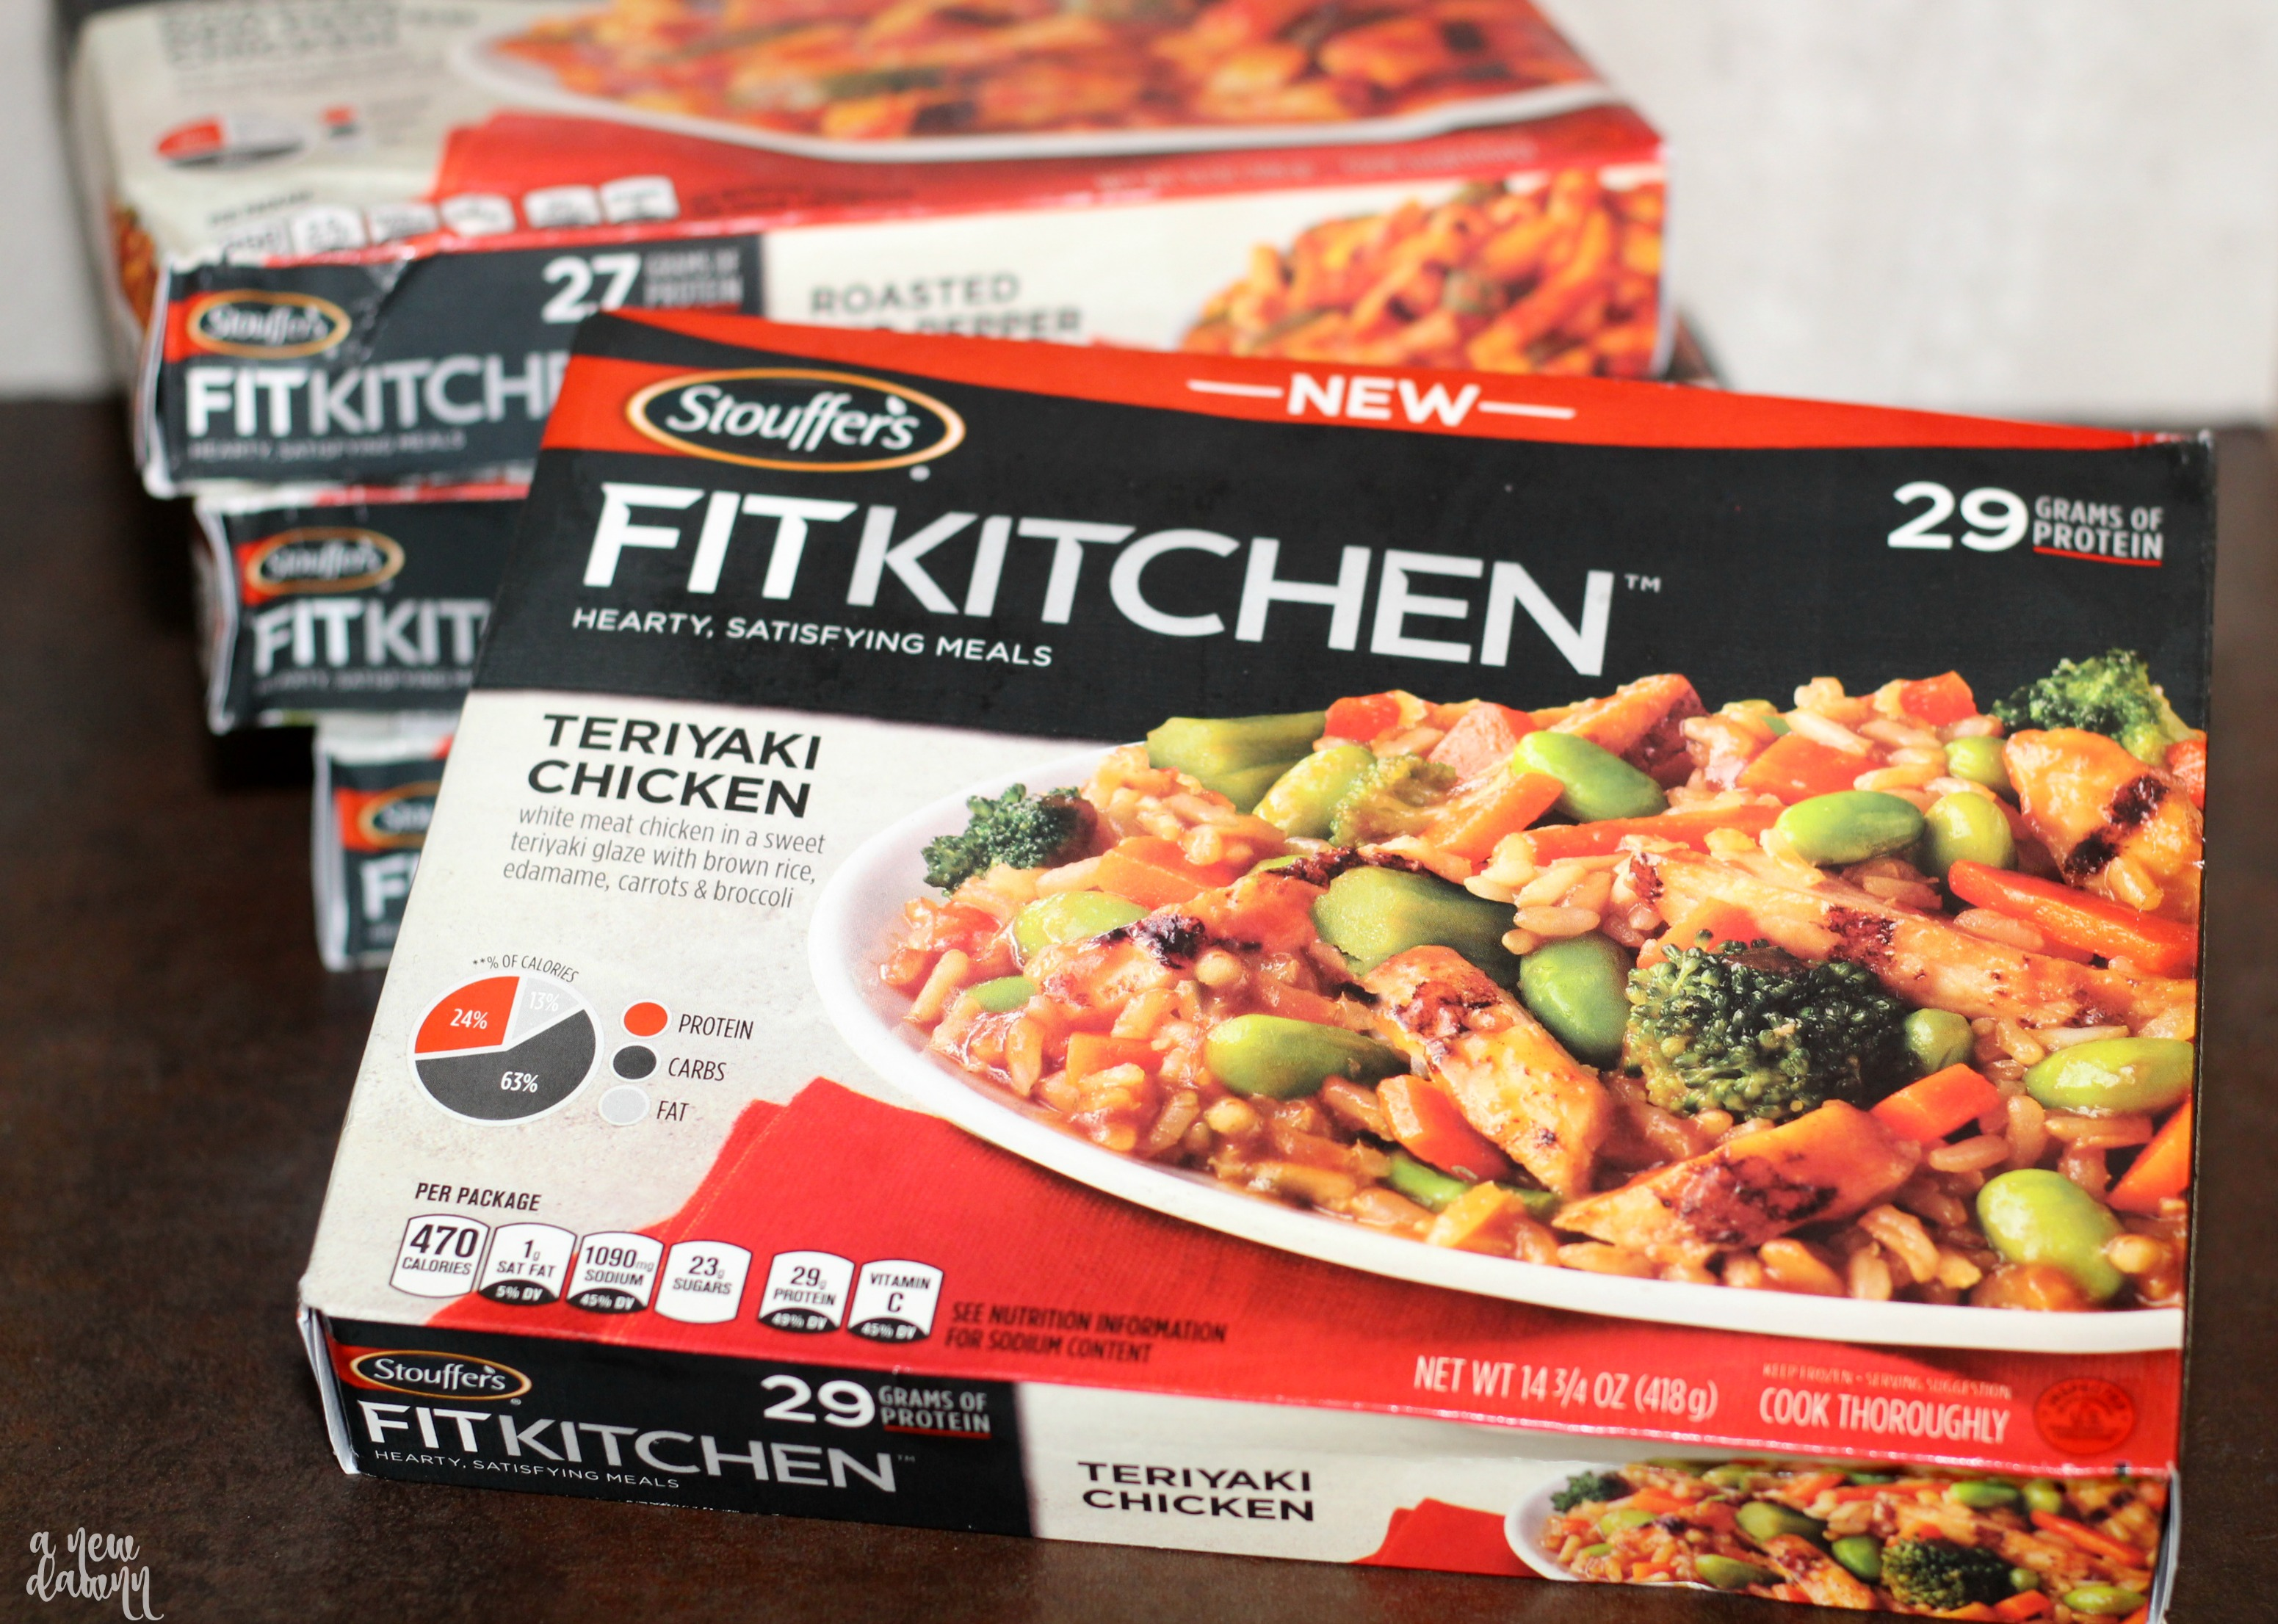 Easy Meal Options from Stouffer's® Fit Kitchen